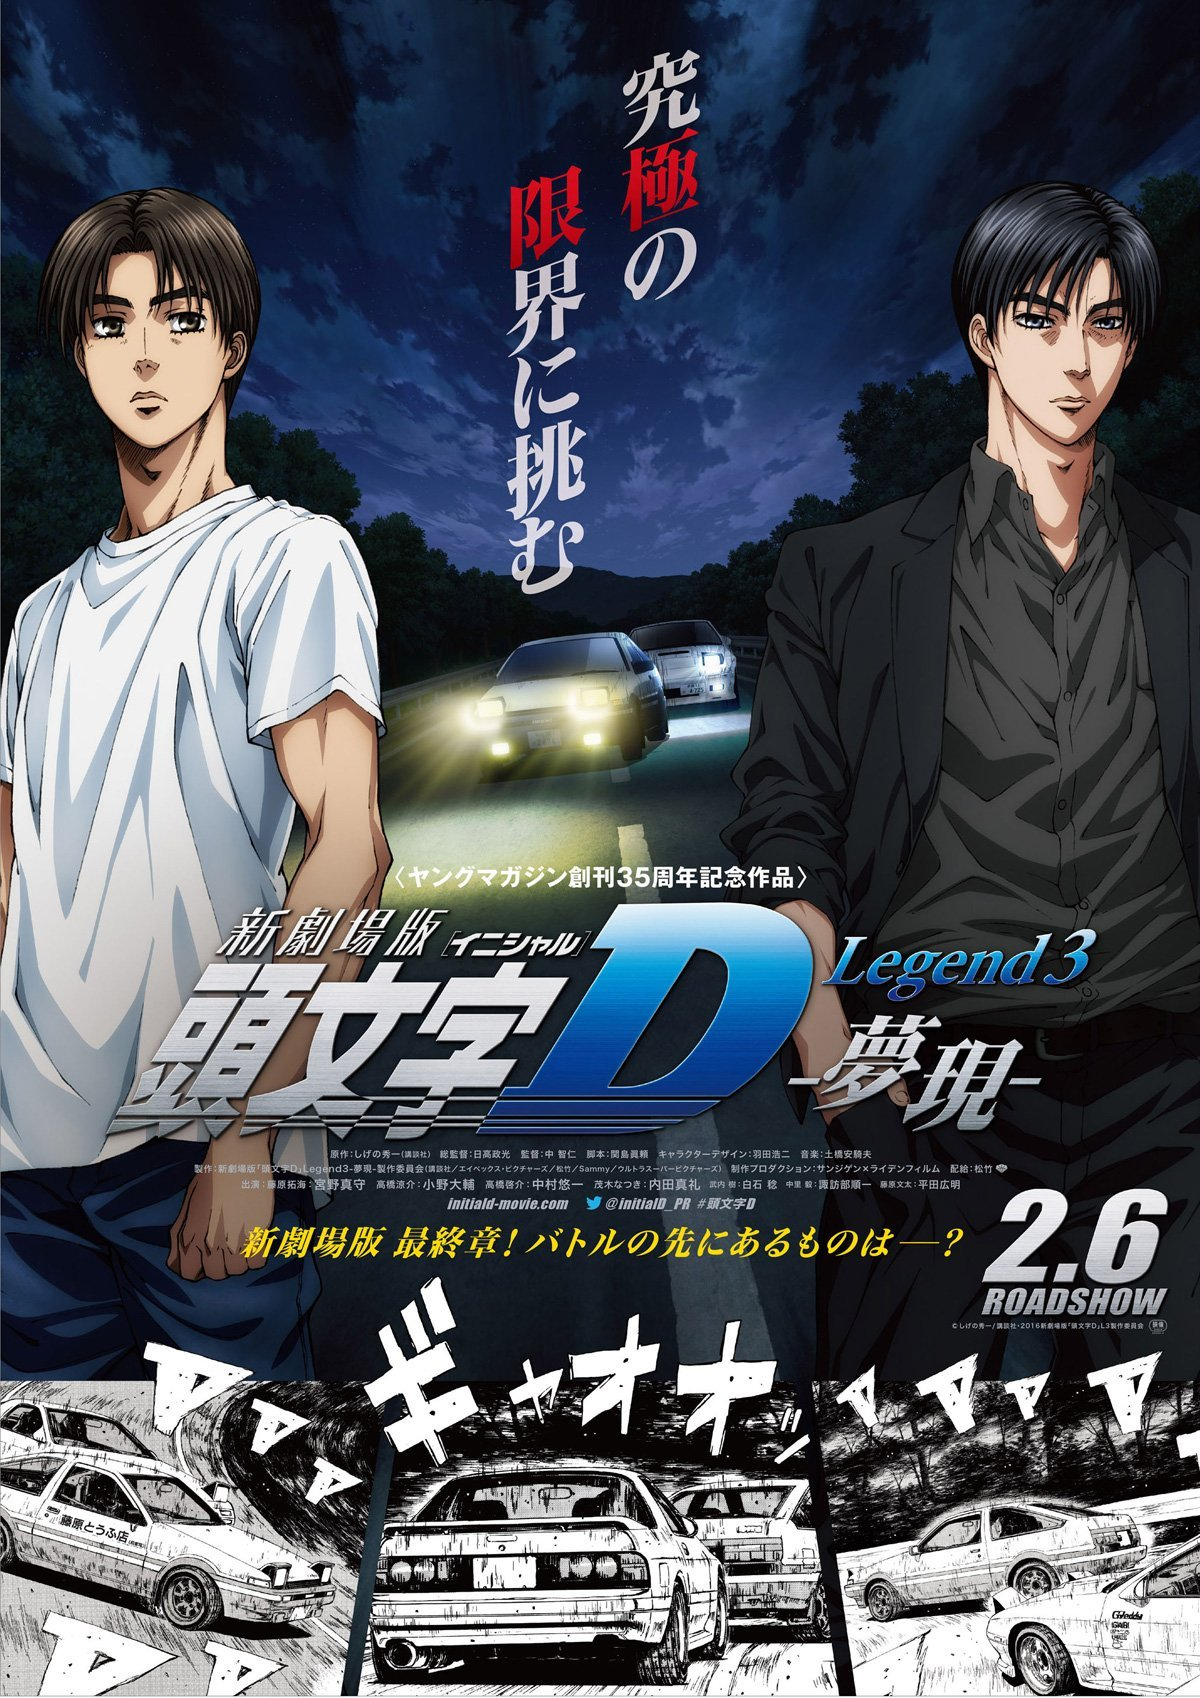 Initial D Legend 3 movie poster